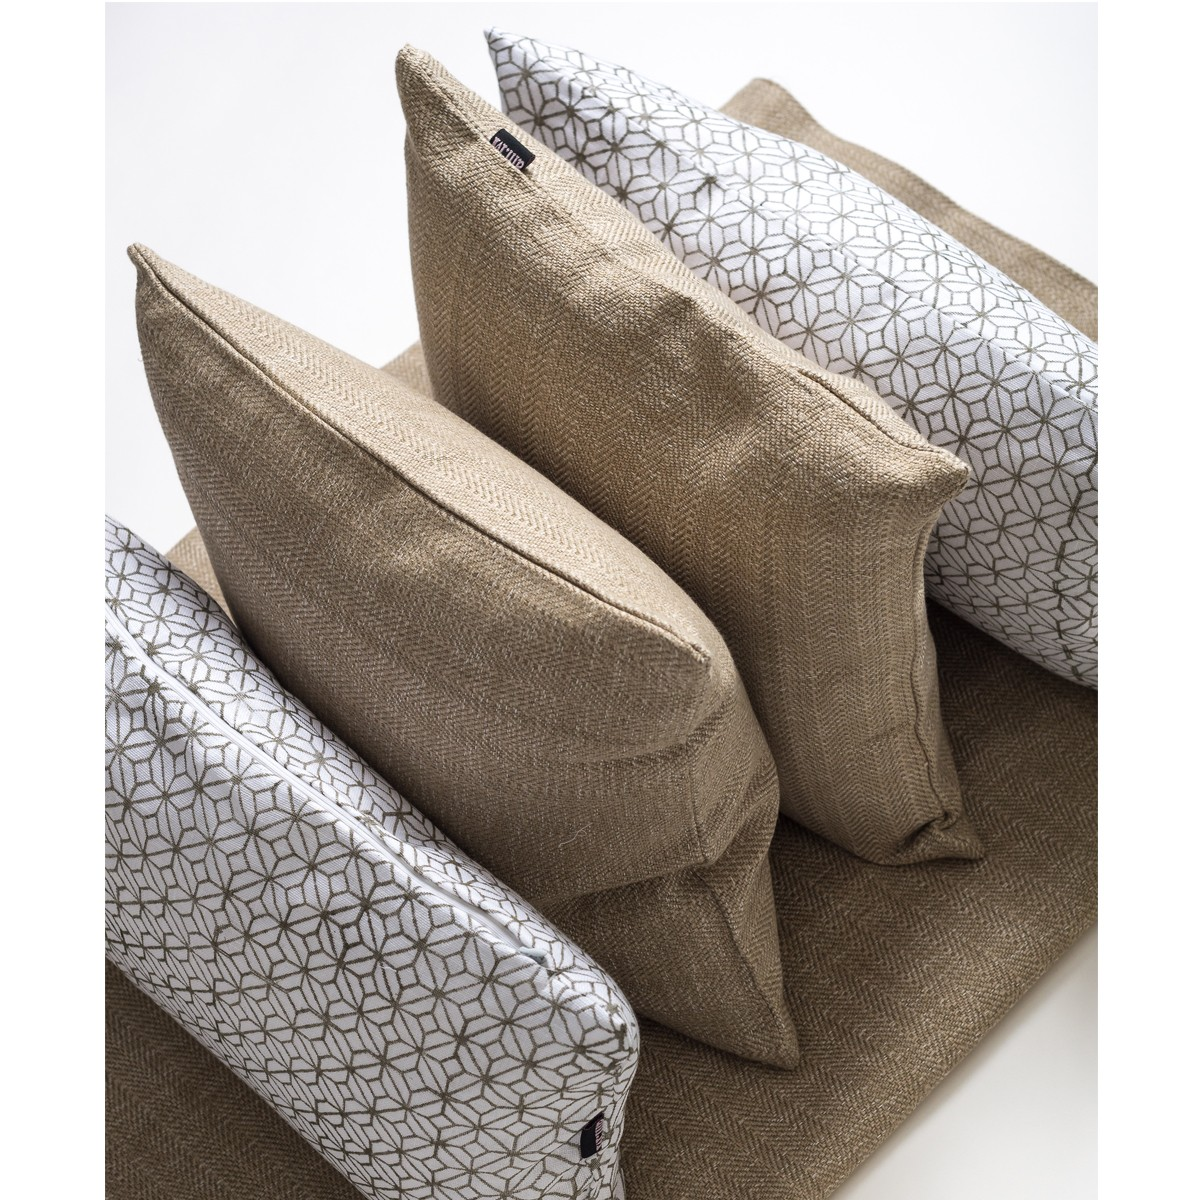 Safari Bedroom Cushion Set - Sand